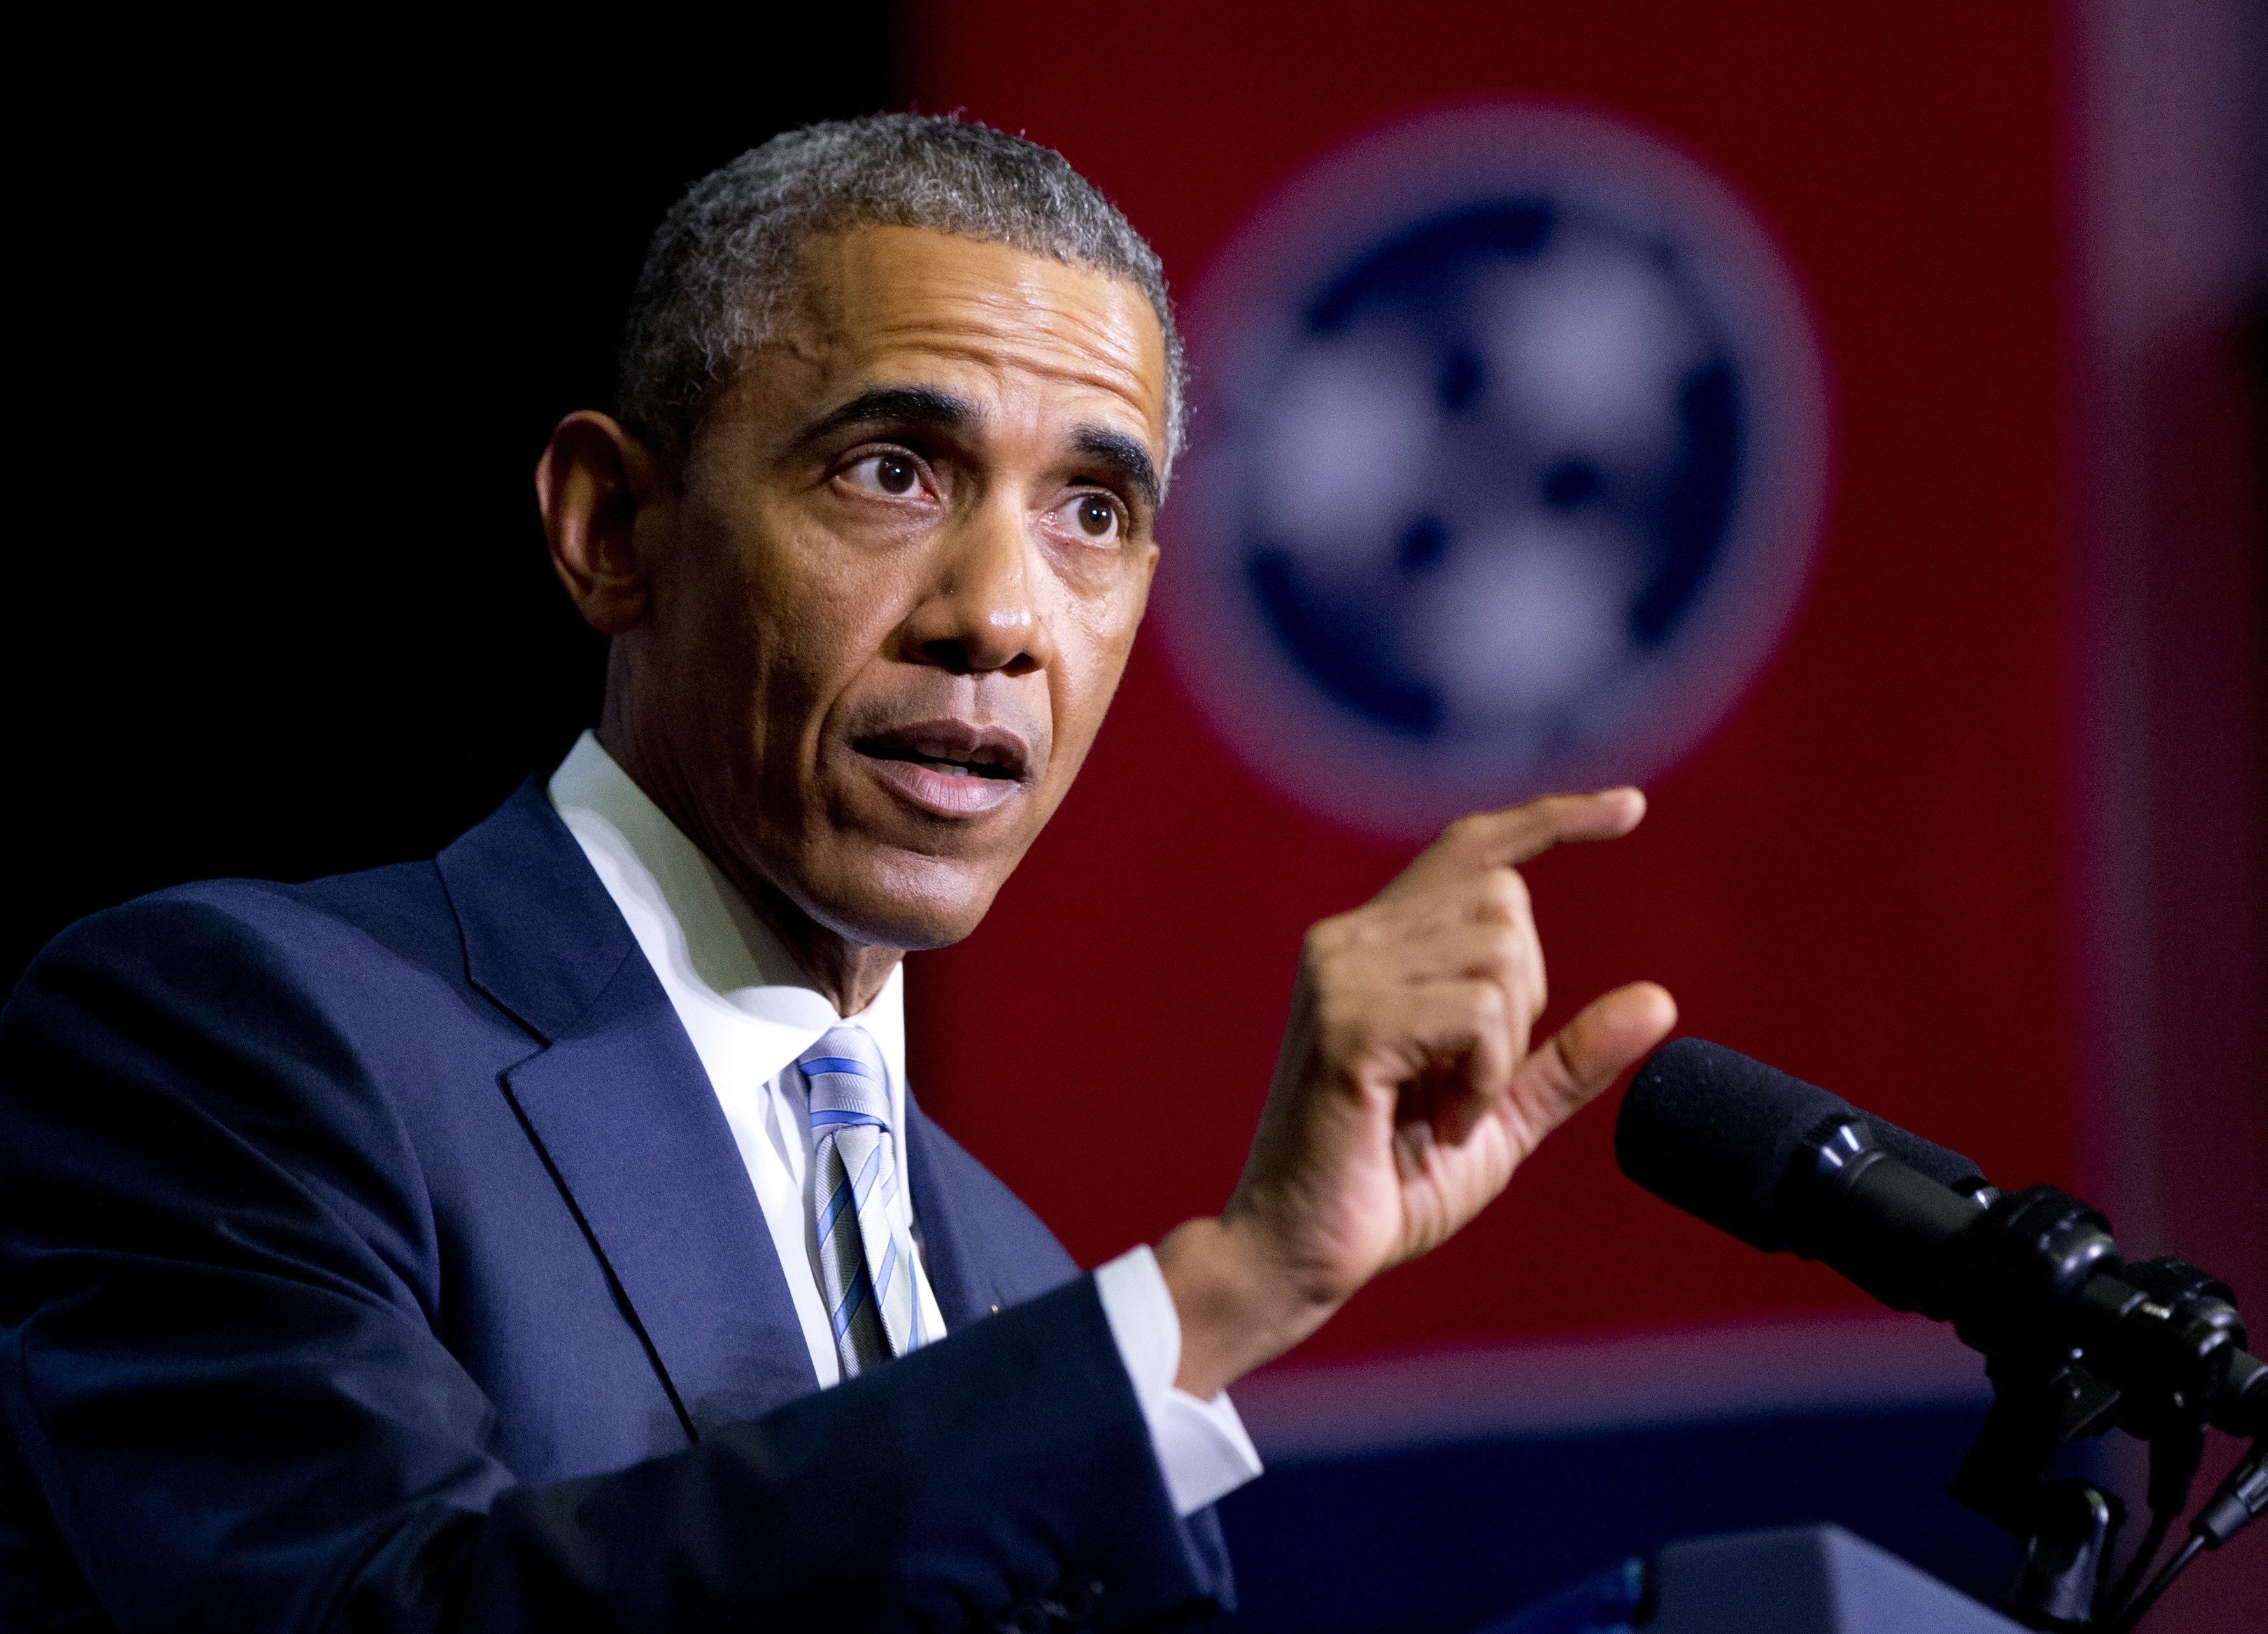 Obama to Signal He's Still Relevant Despite GOP Congress